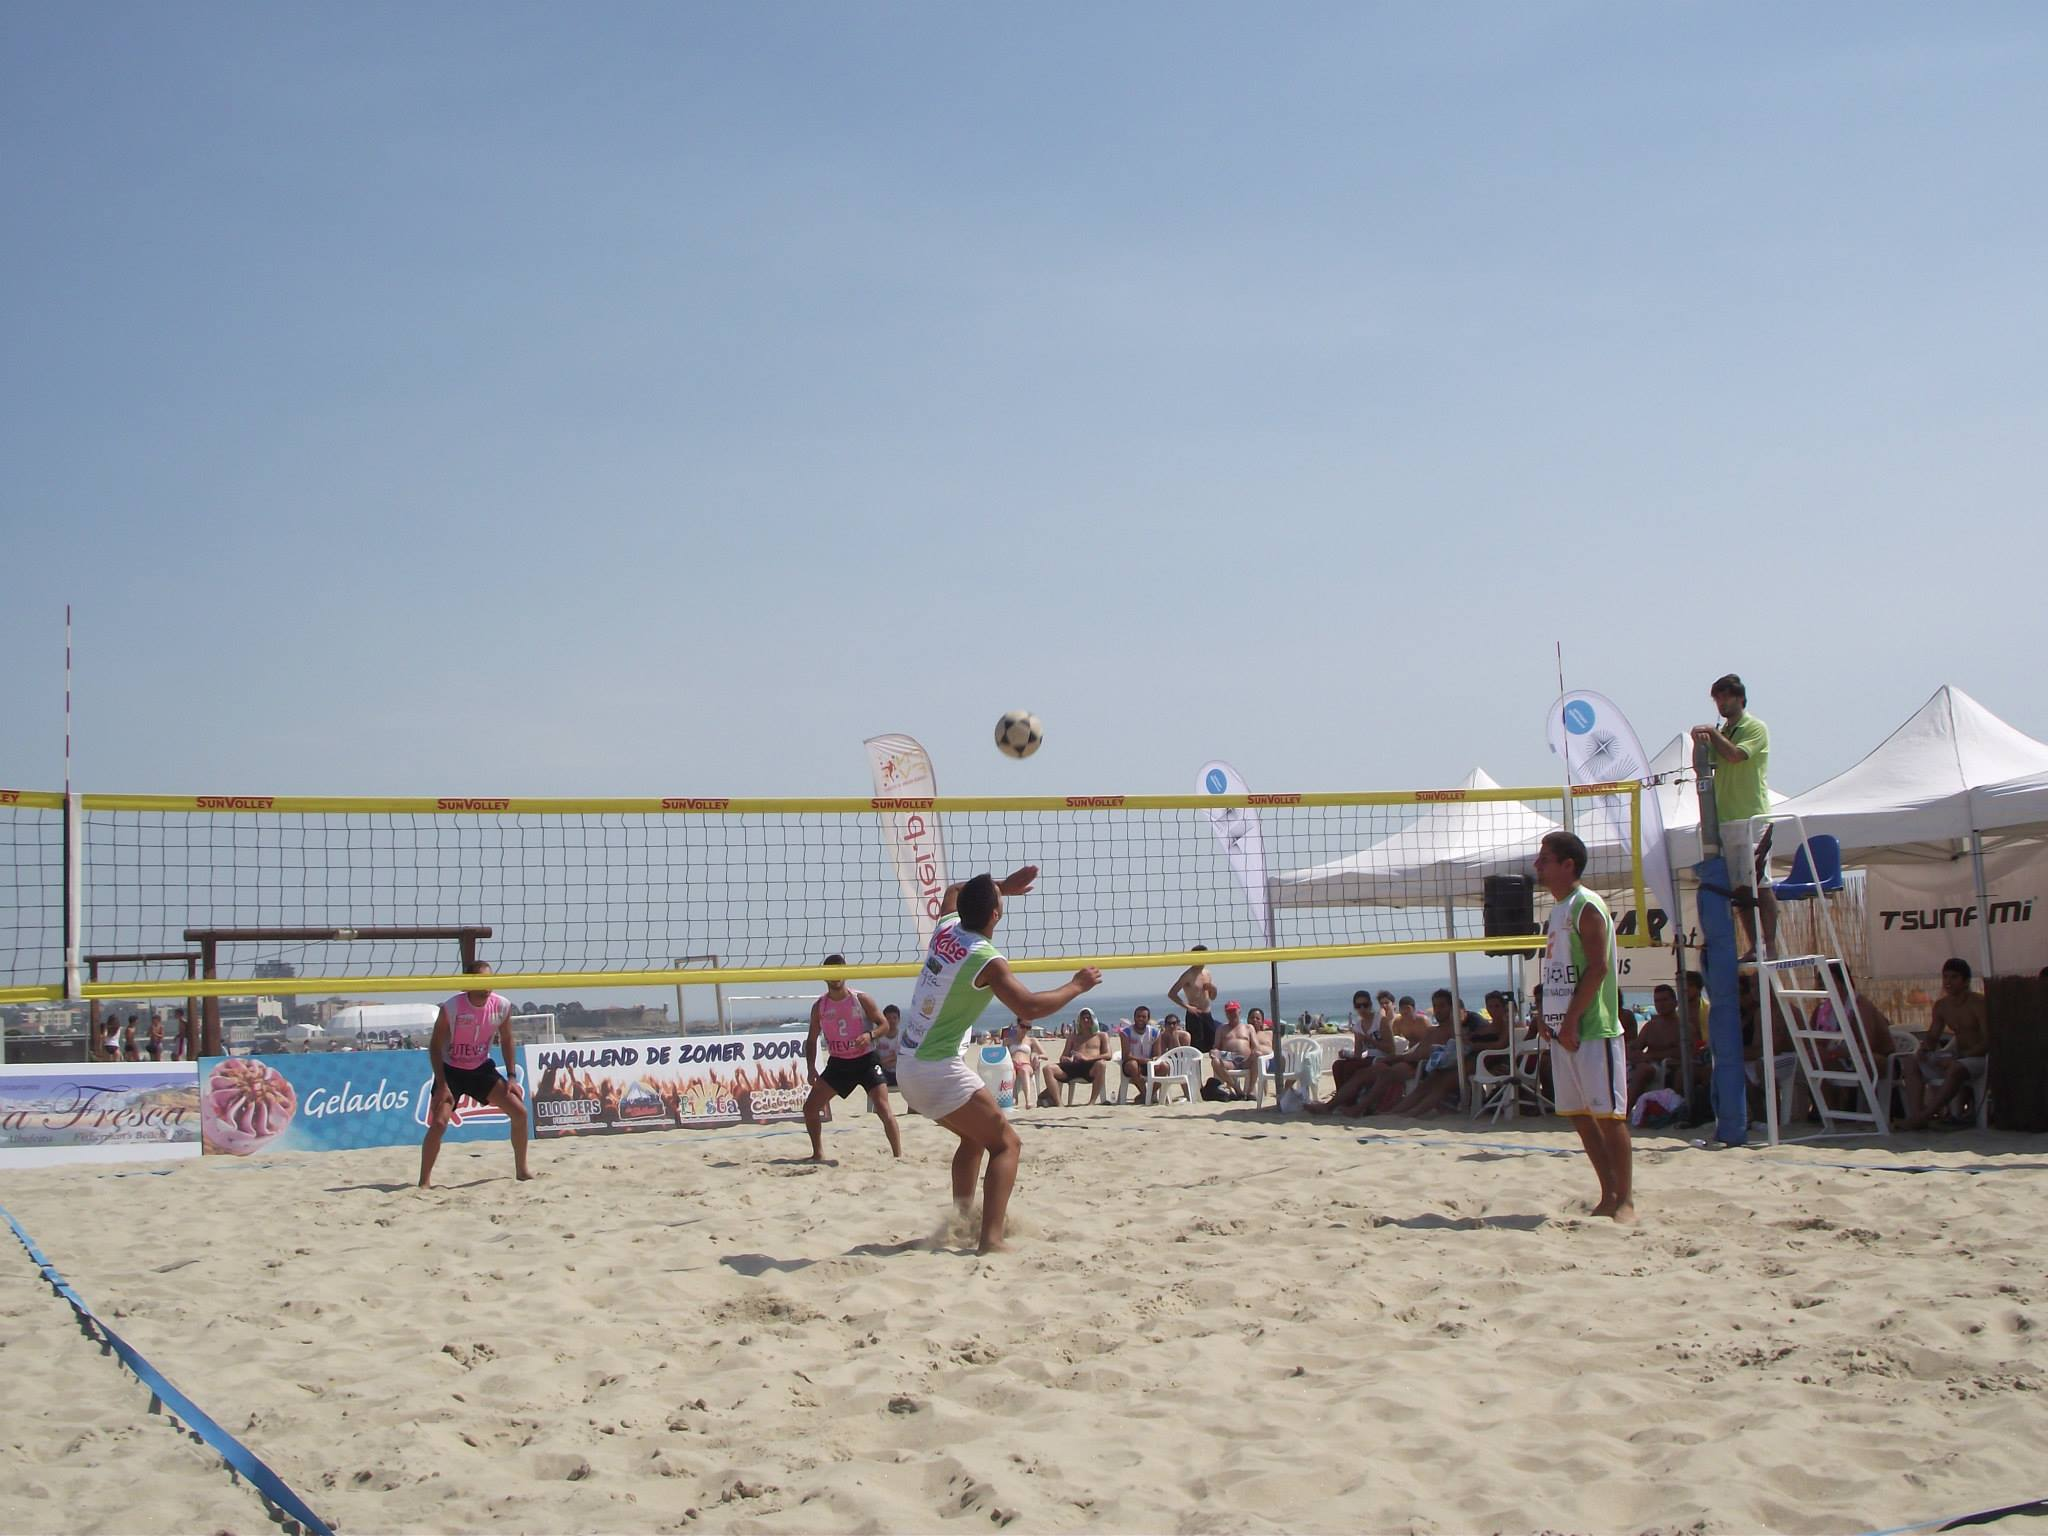 2nd stage - National Footvolley Championship 2013 - Matosinhos